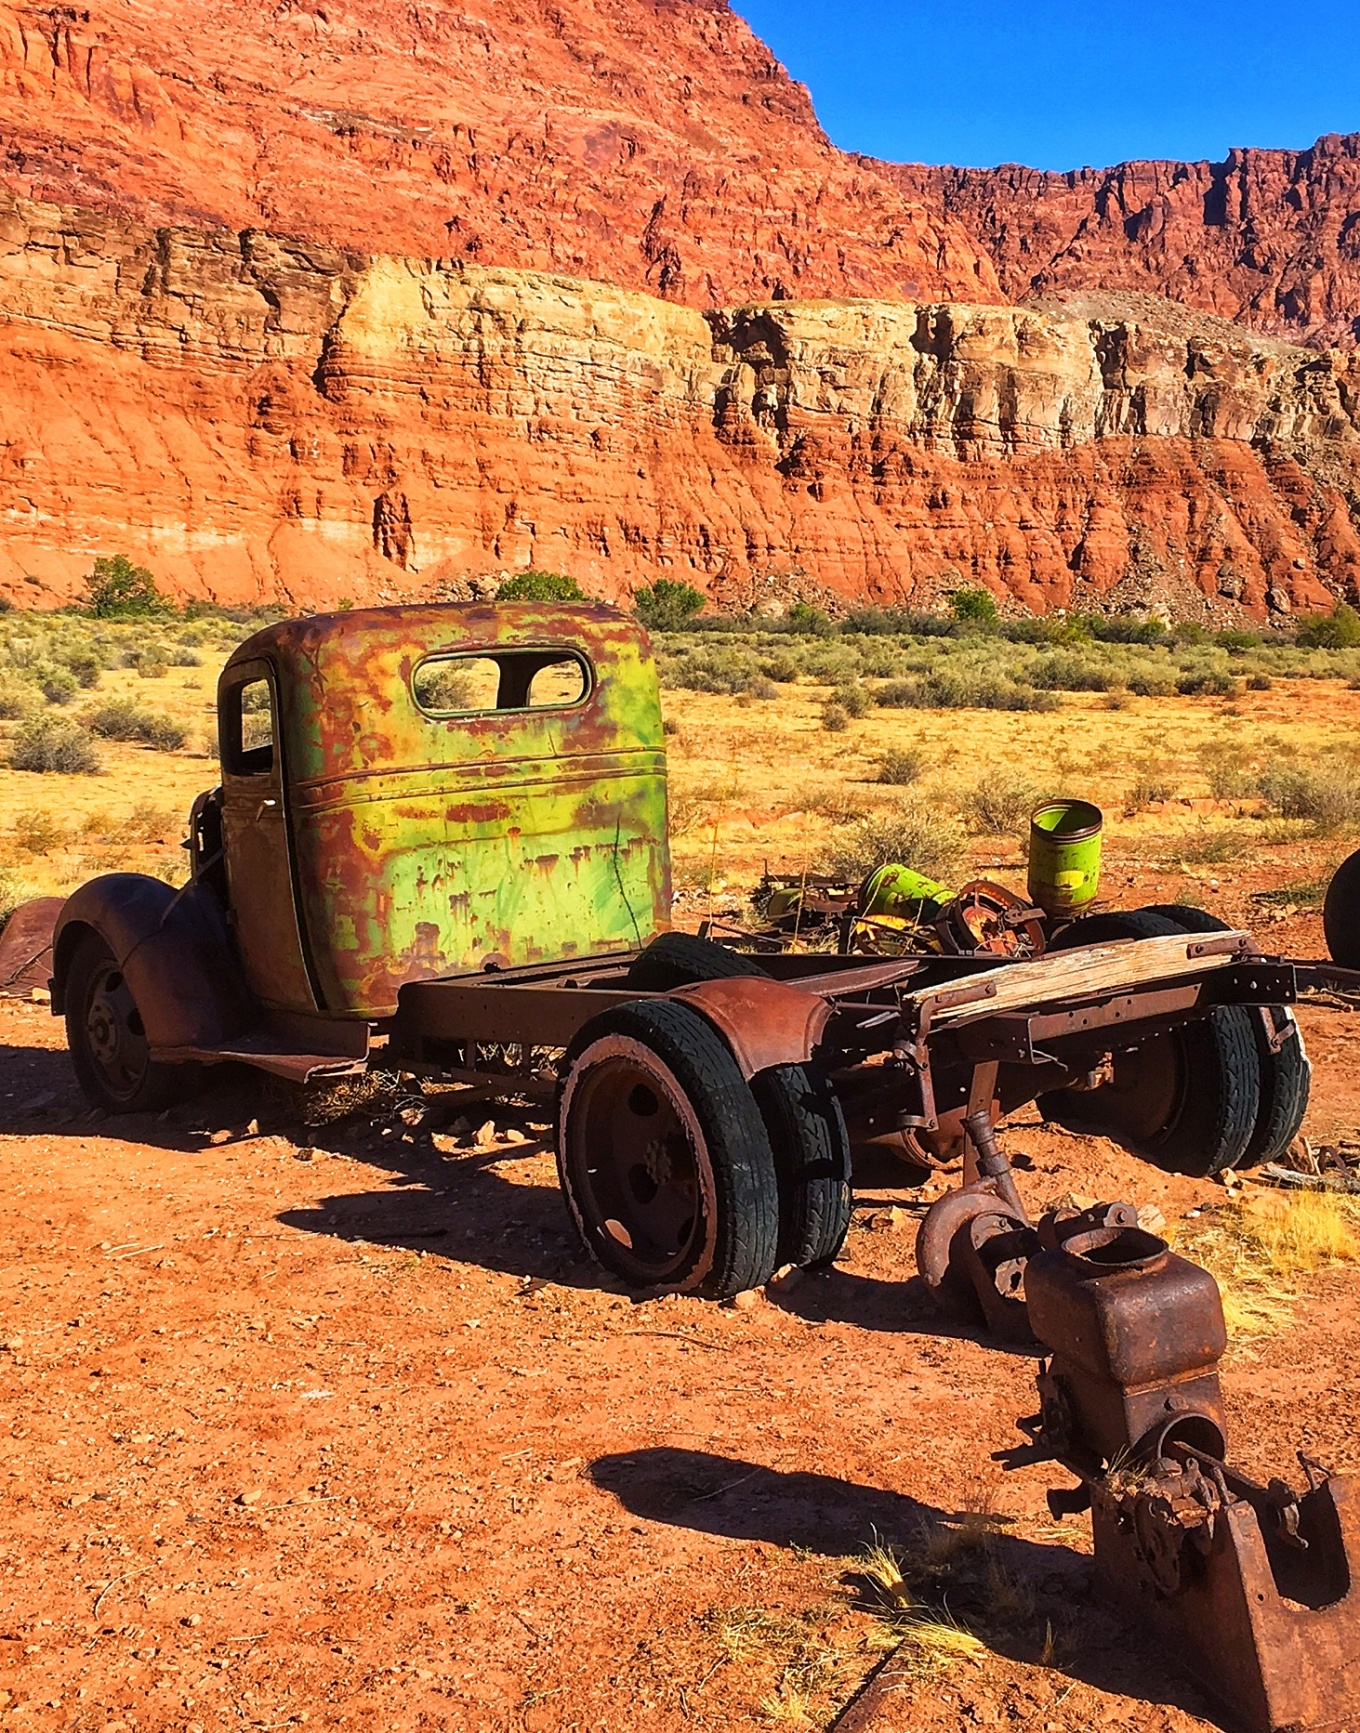 Rusted Vintage Truck at Lonely Dell Ranch